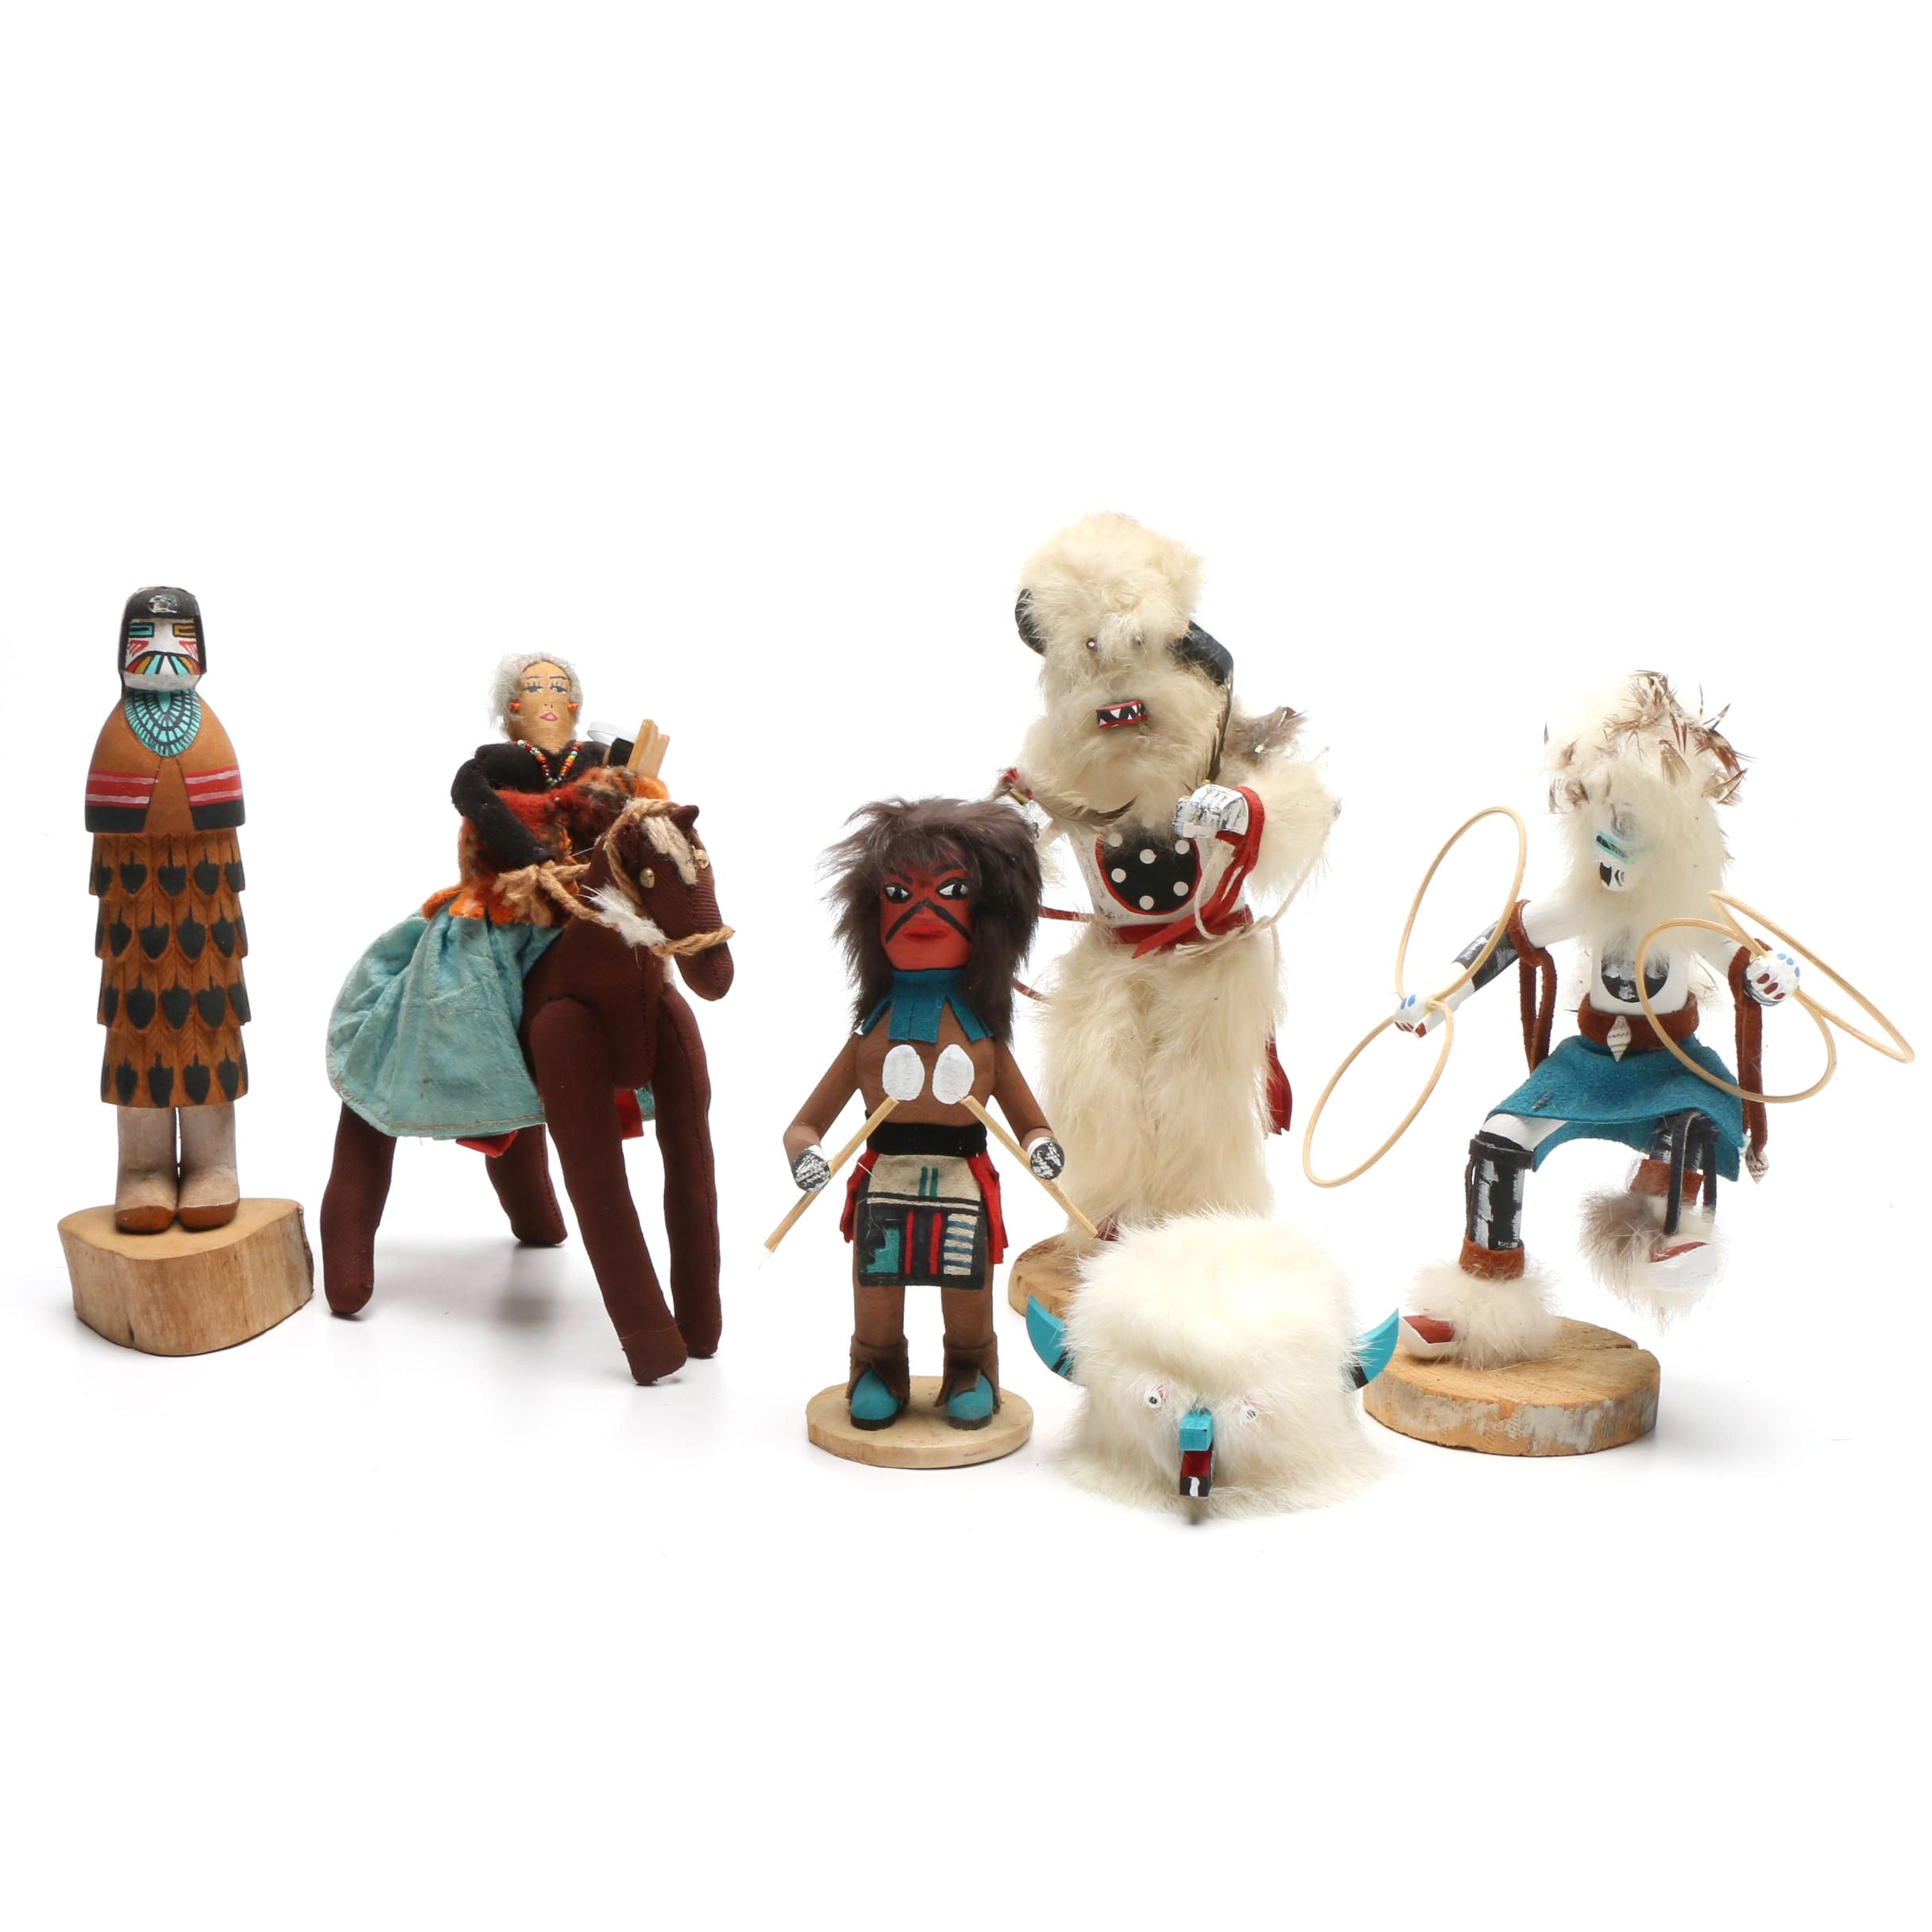 Signed Kachina Style Dolls and Other Handmade Figurines